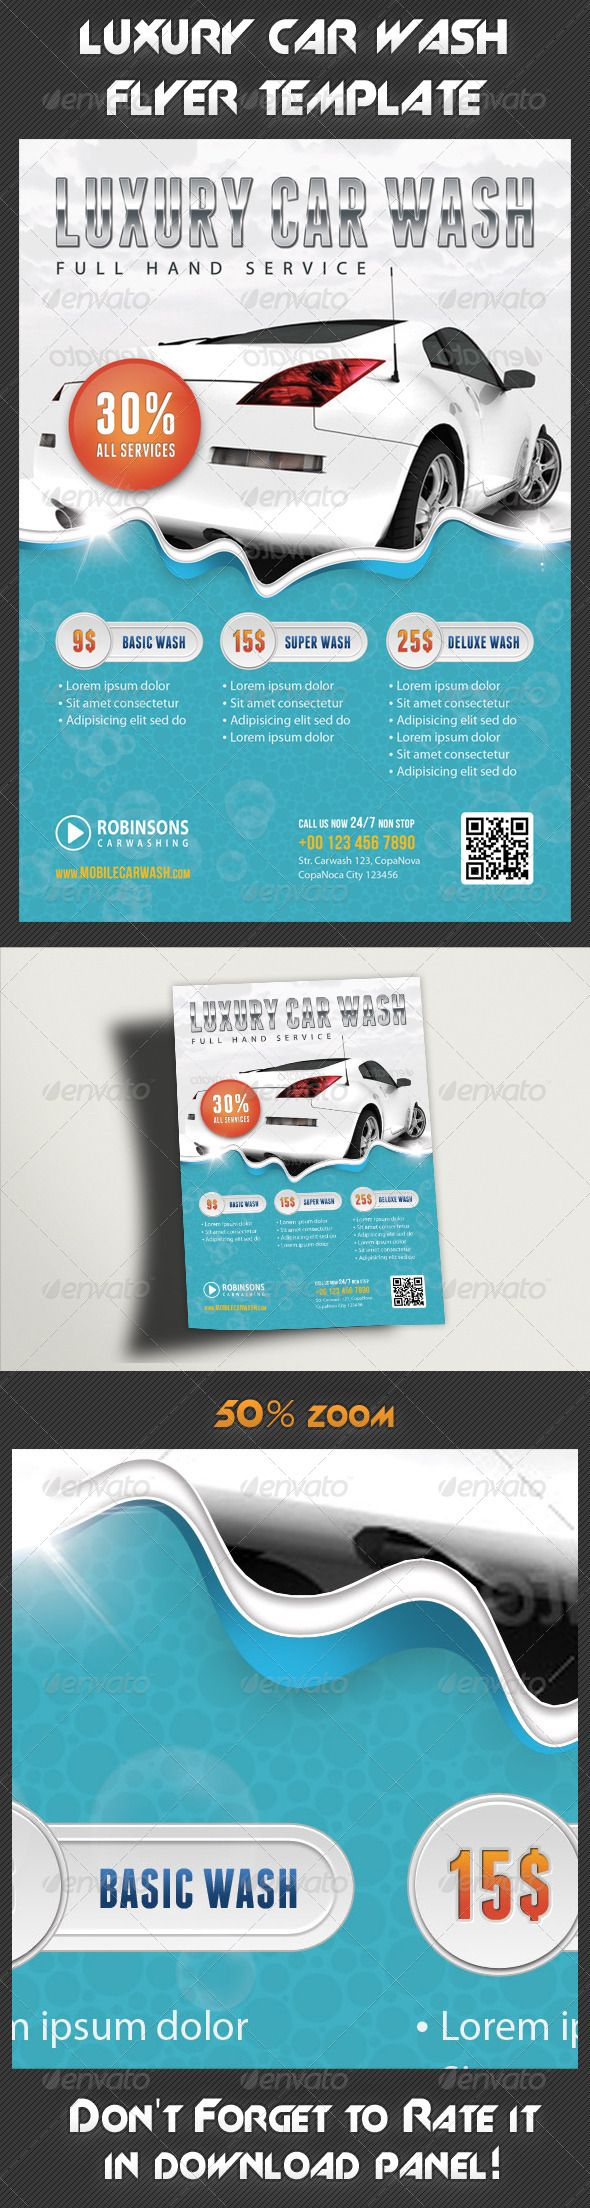 best ideas about car wash business auto car wash flyer advertising auto clean auto detailing business